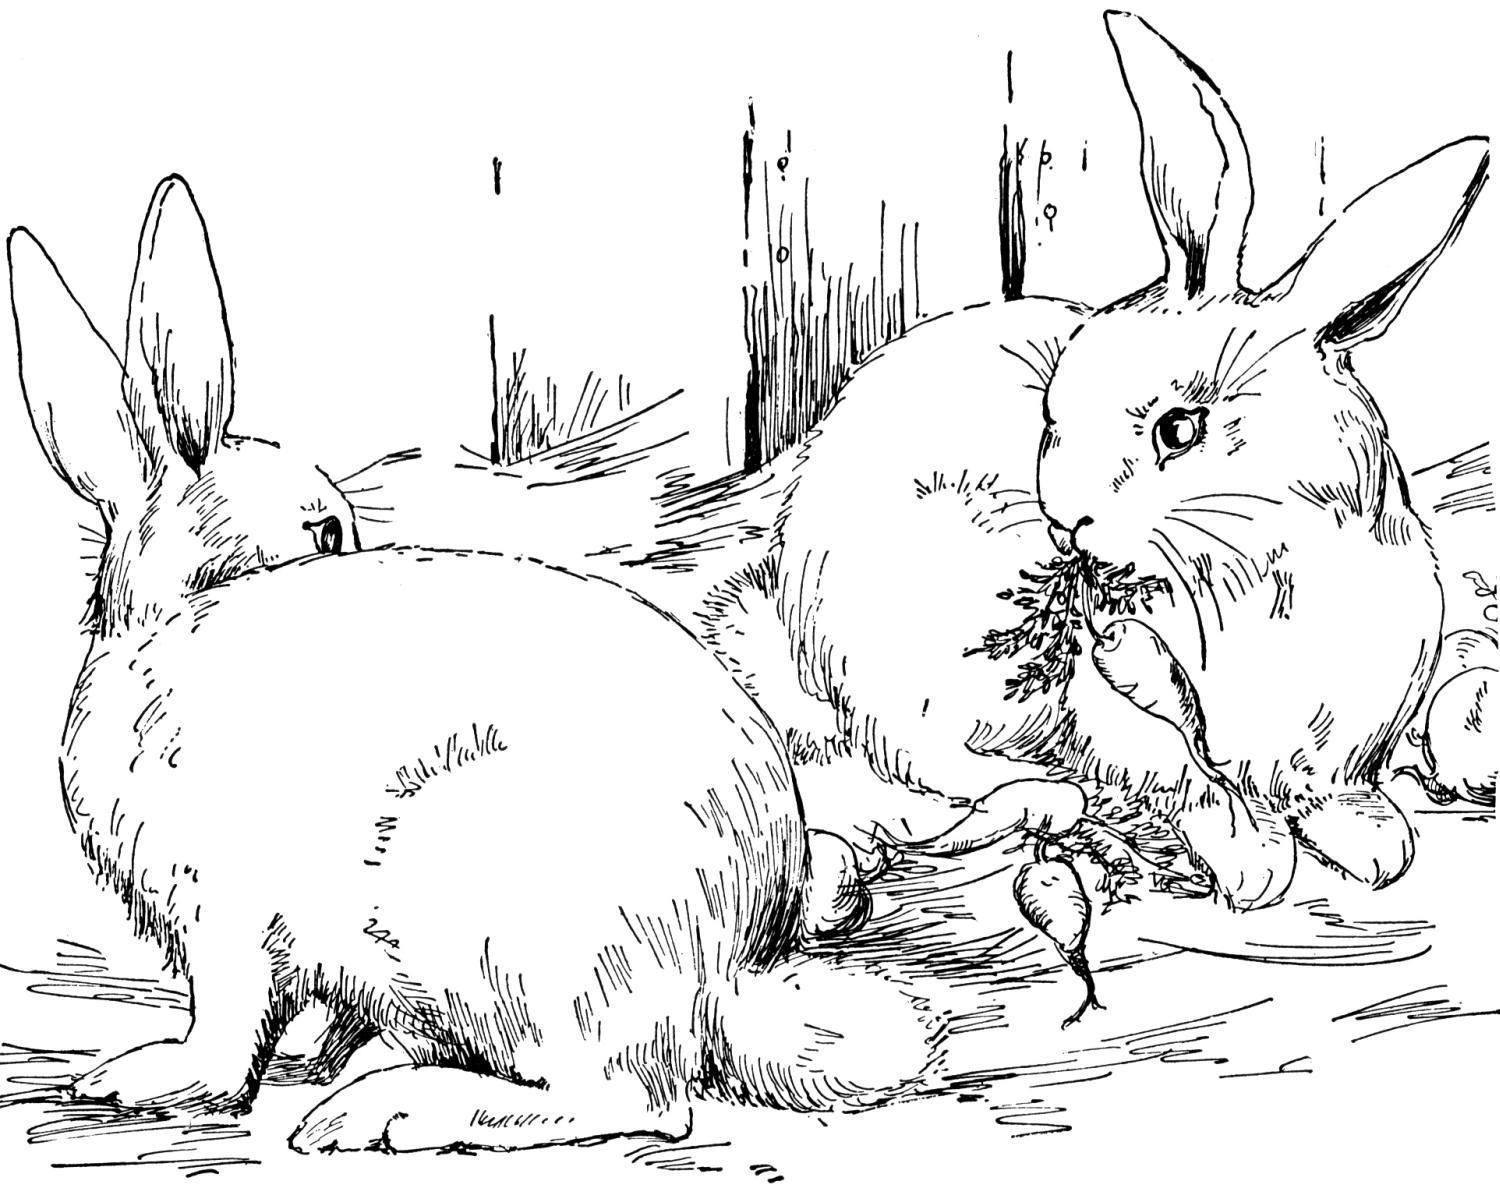 Realistic coloring pages of animals to print - Bunny Coloring Pages Bunny Rabbit Coloring Pages Print Ostern 1ebb81bed637ceebfba159c0e727b72c